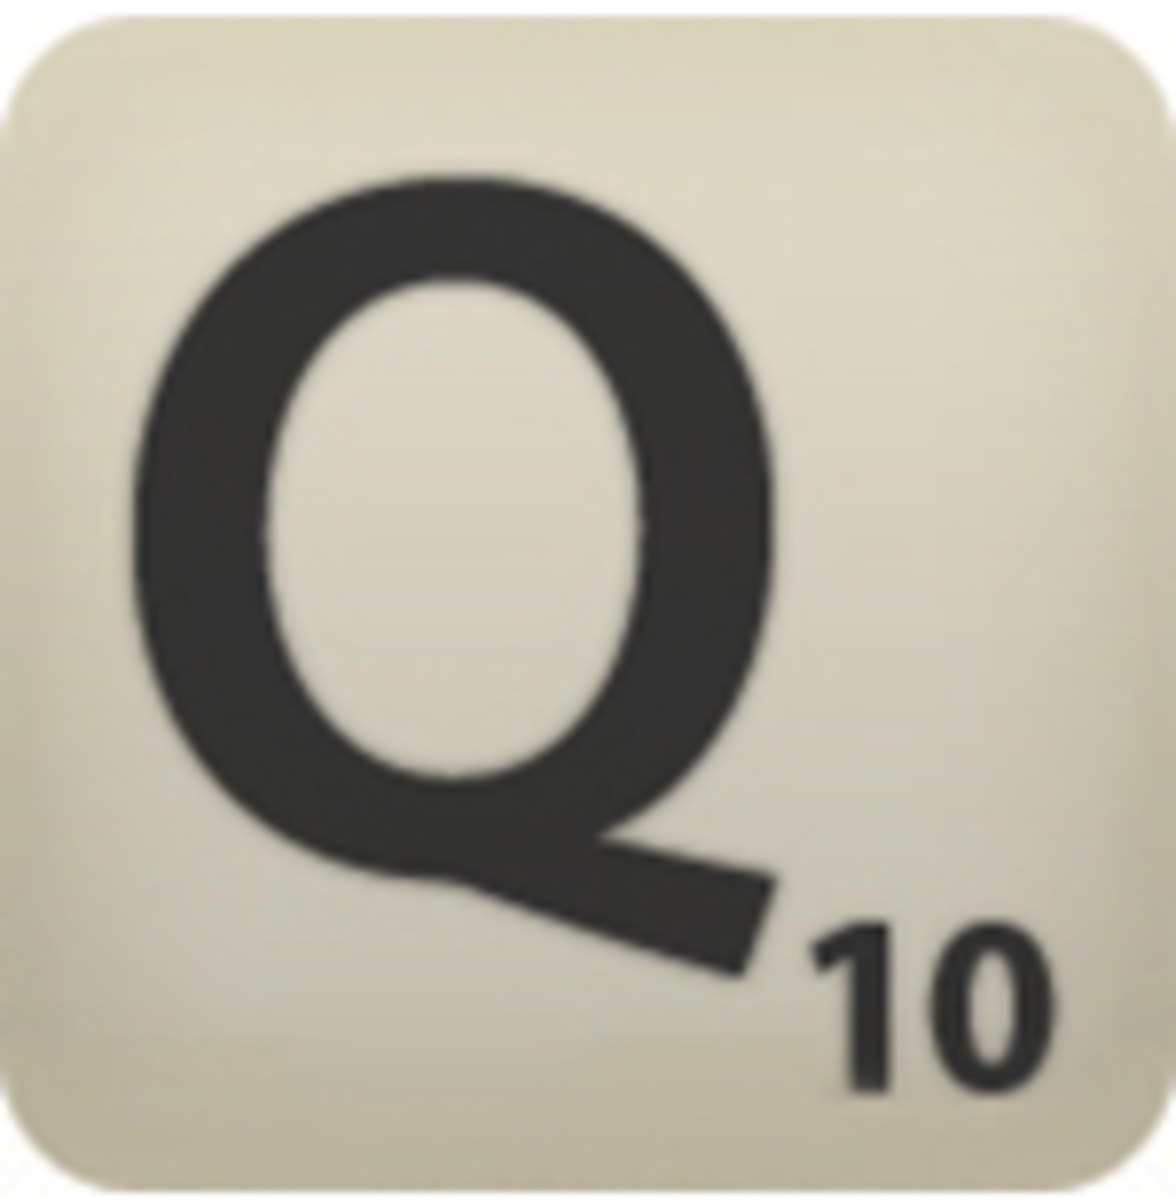 Q10 - Free Writing Software (Detailed Review)